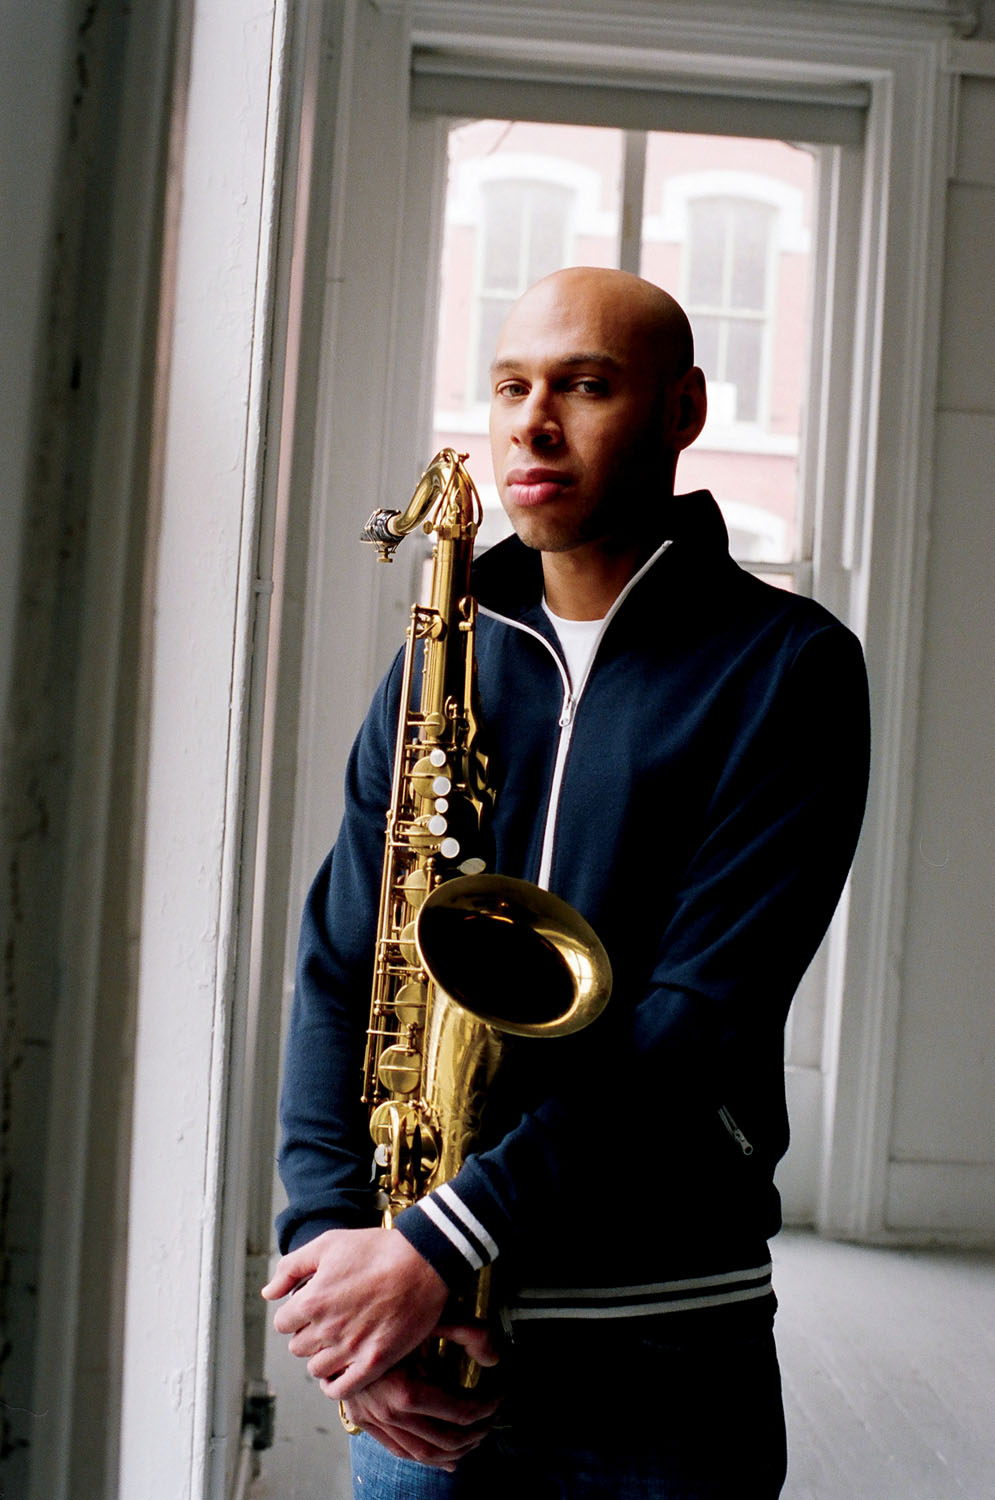 Artist in residence: James Farm featuring Joshua Redman